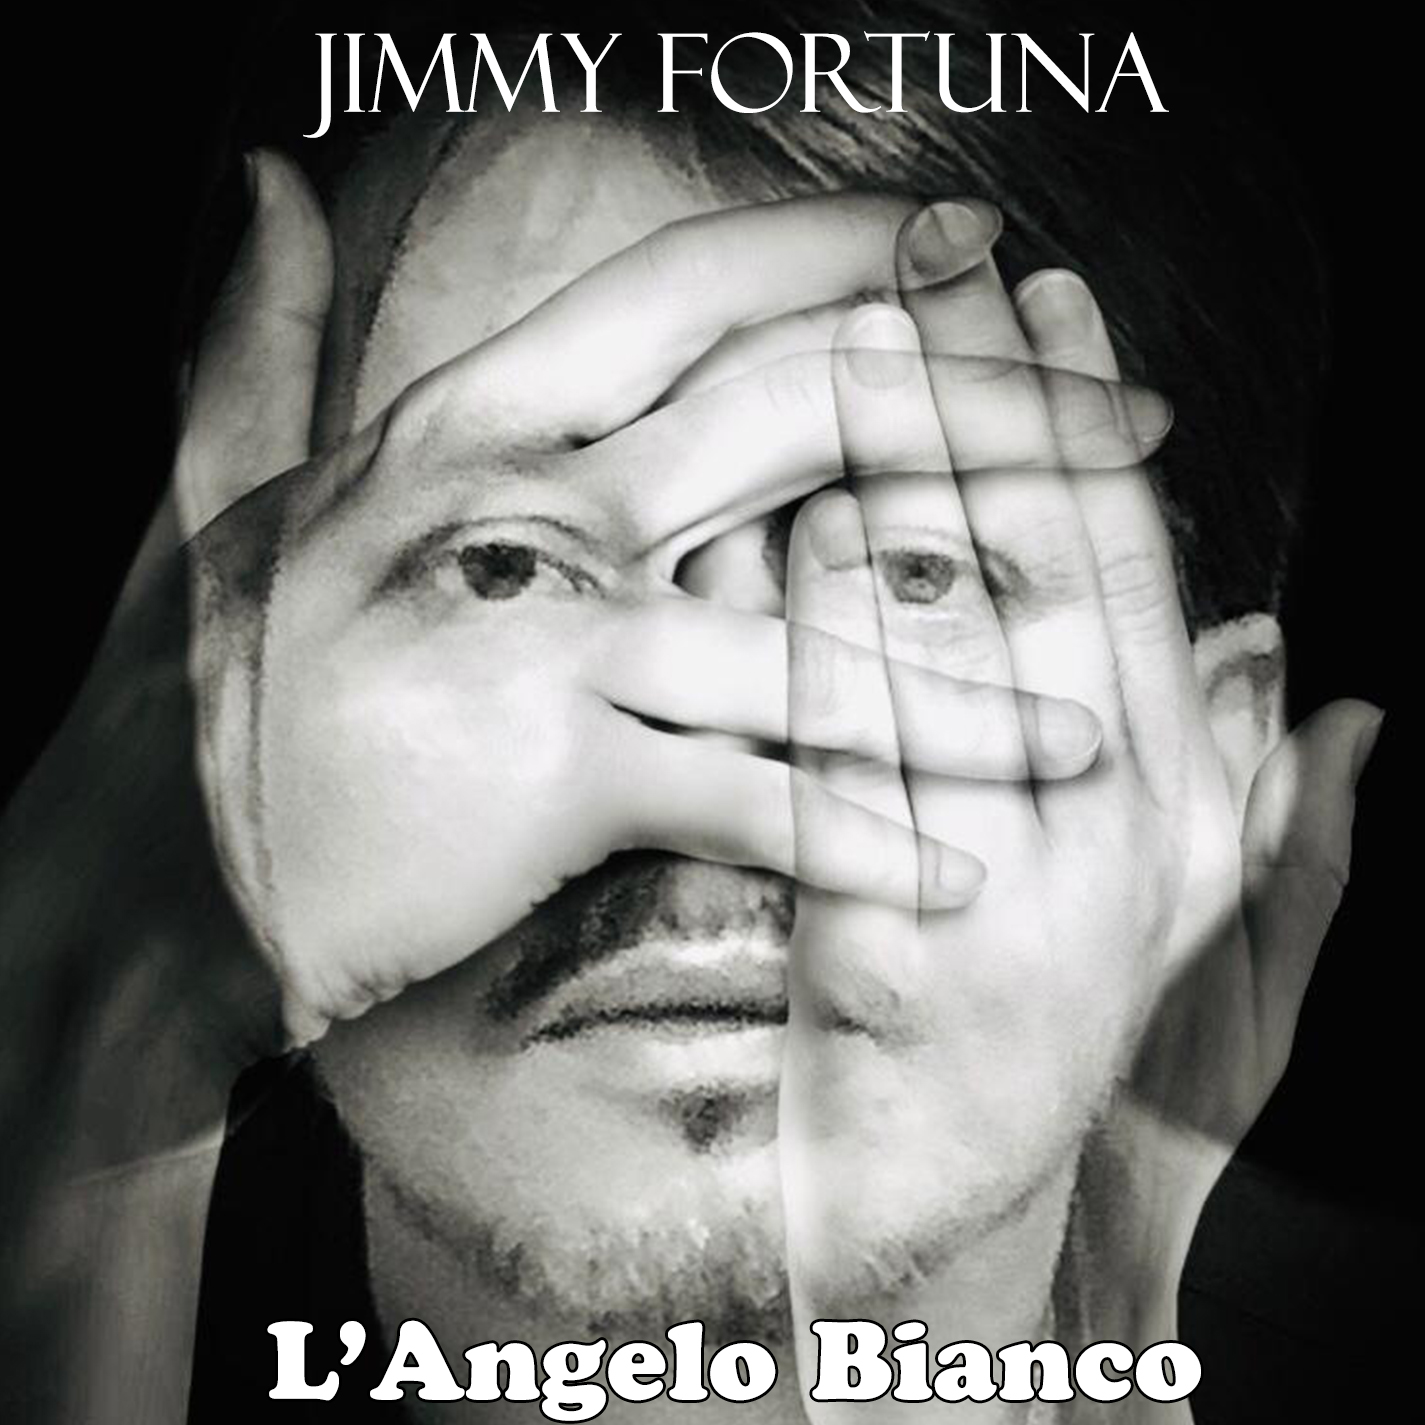 Jimmy Fortuna